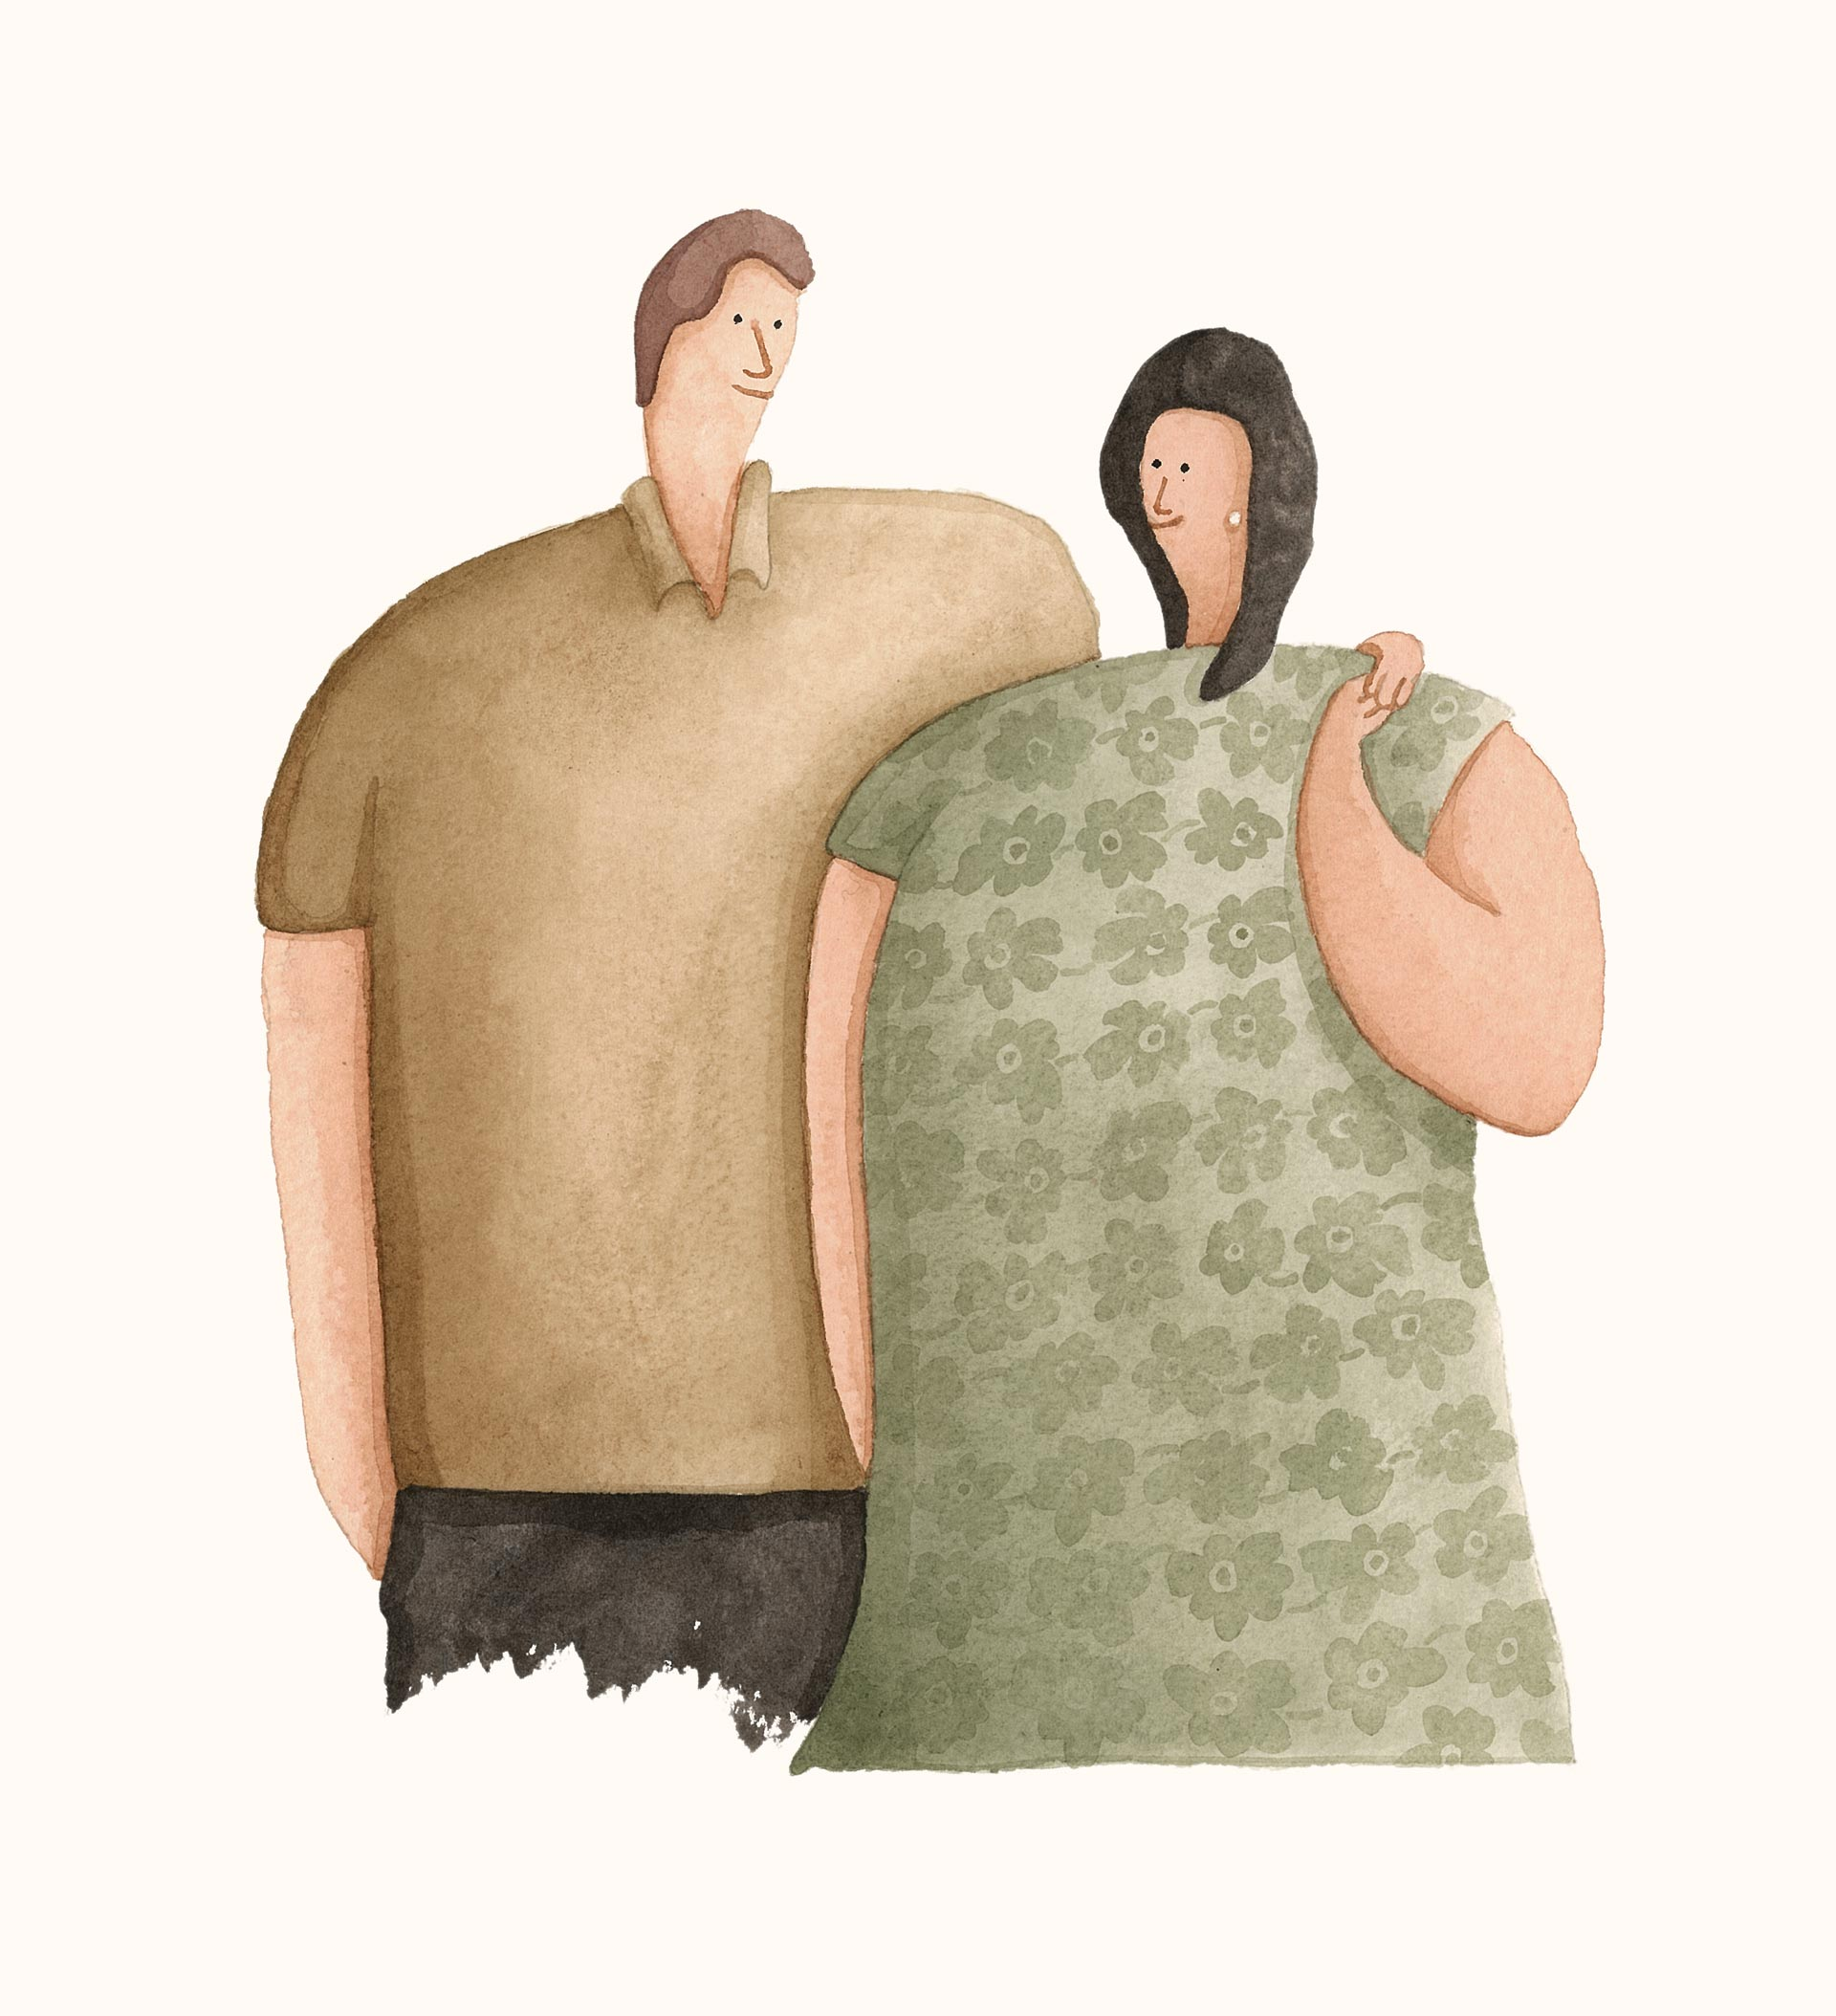 lashford-illustration_casual-couple